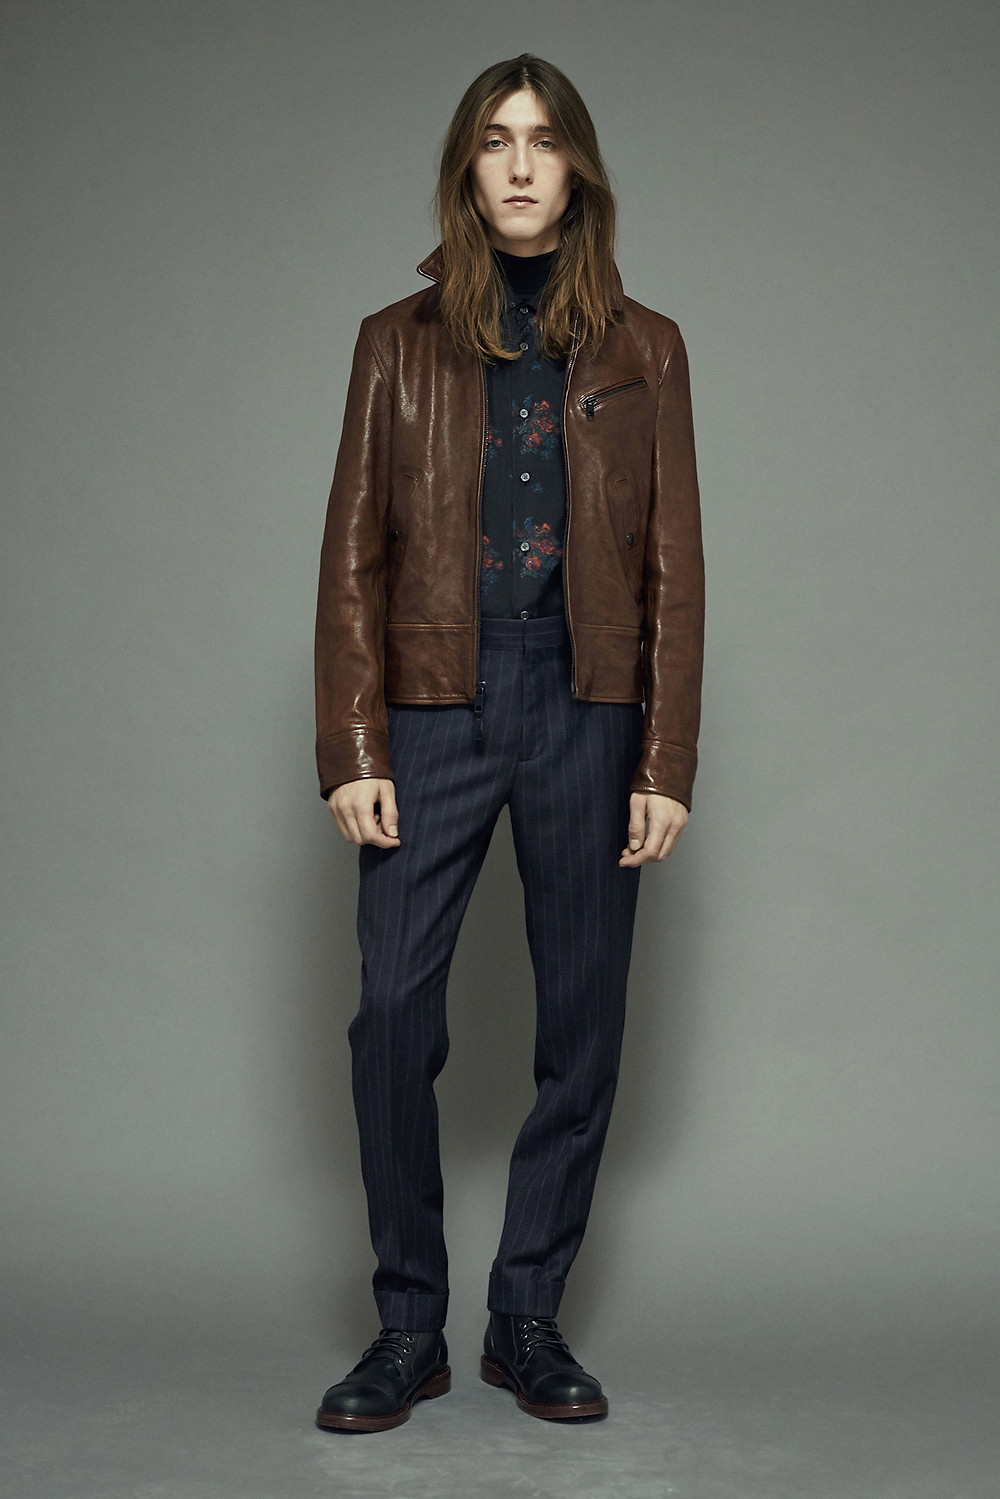 Marc_Jacobs_018_1366